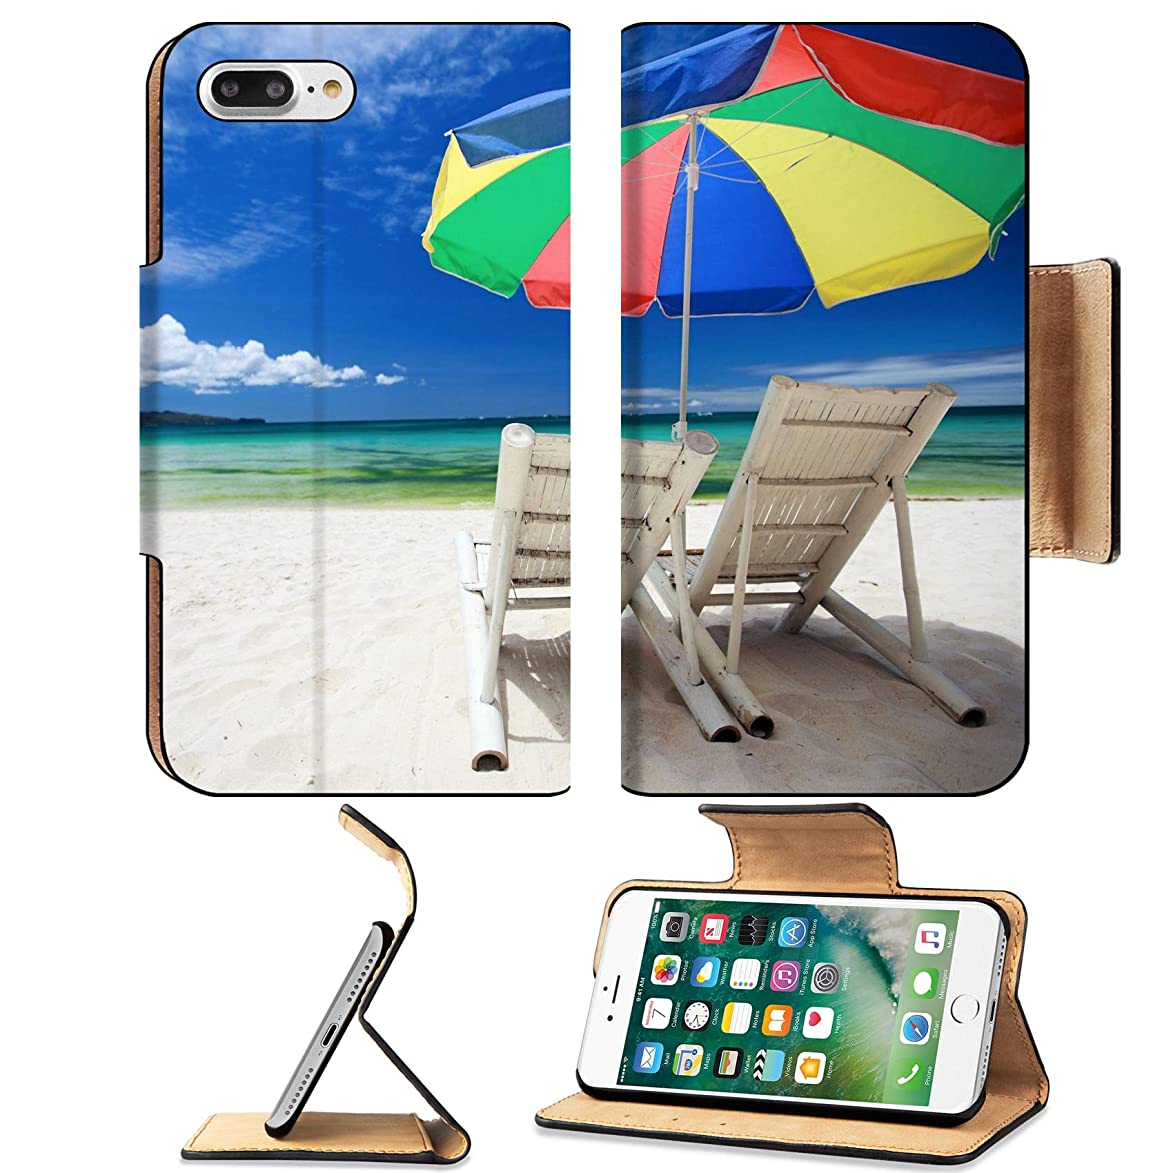 Liili Premium Apple iPhone 7 plus iPhone 8 plus Flip Pu Wallet Case Two beach chairs and colorful umbrella on perfect tropical beach Photo 7713896